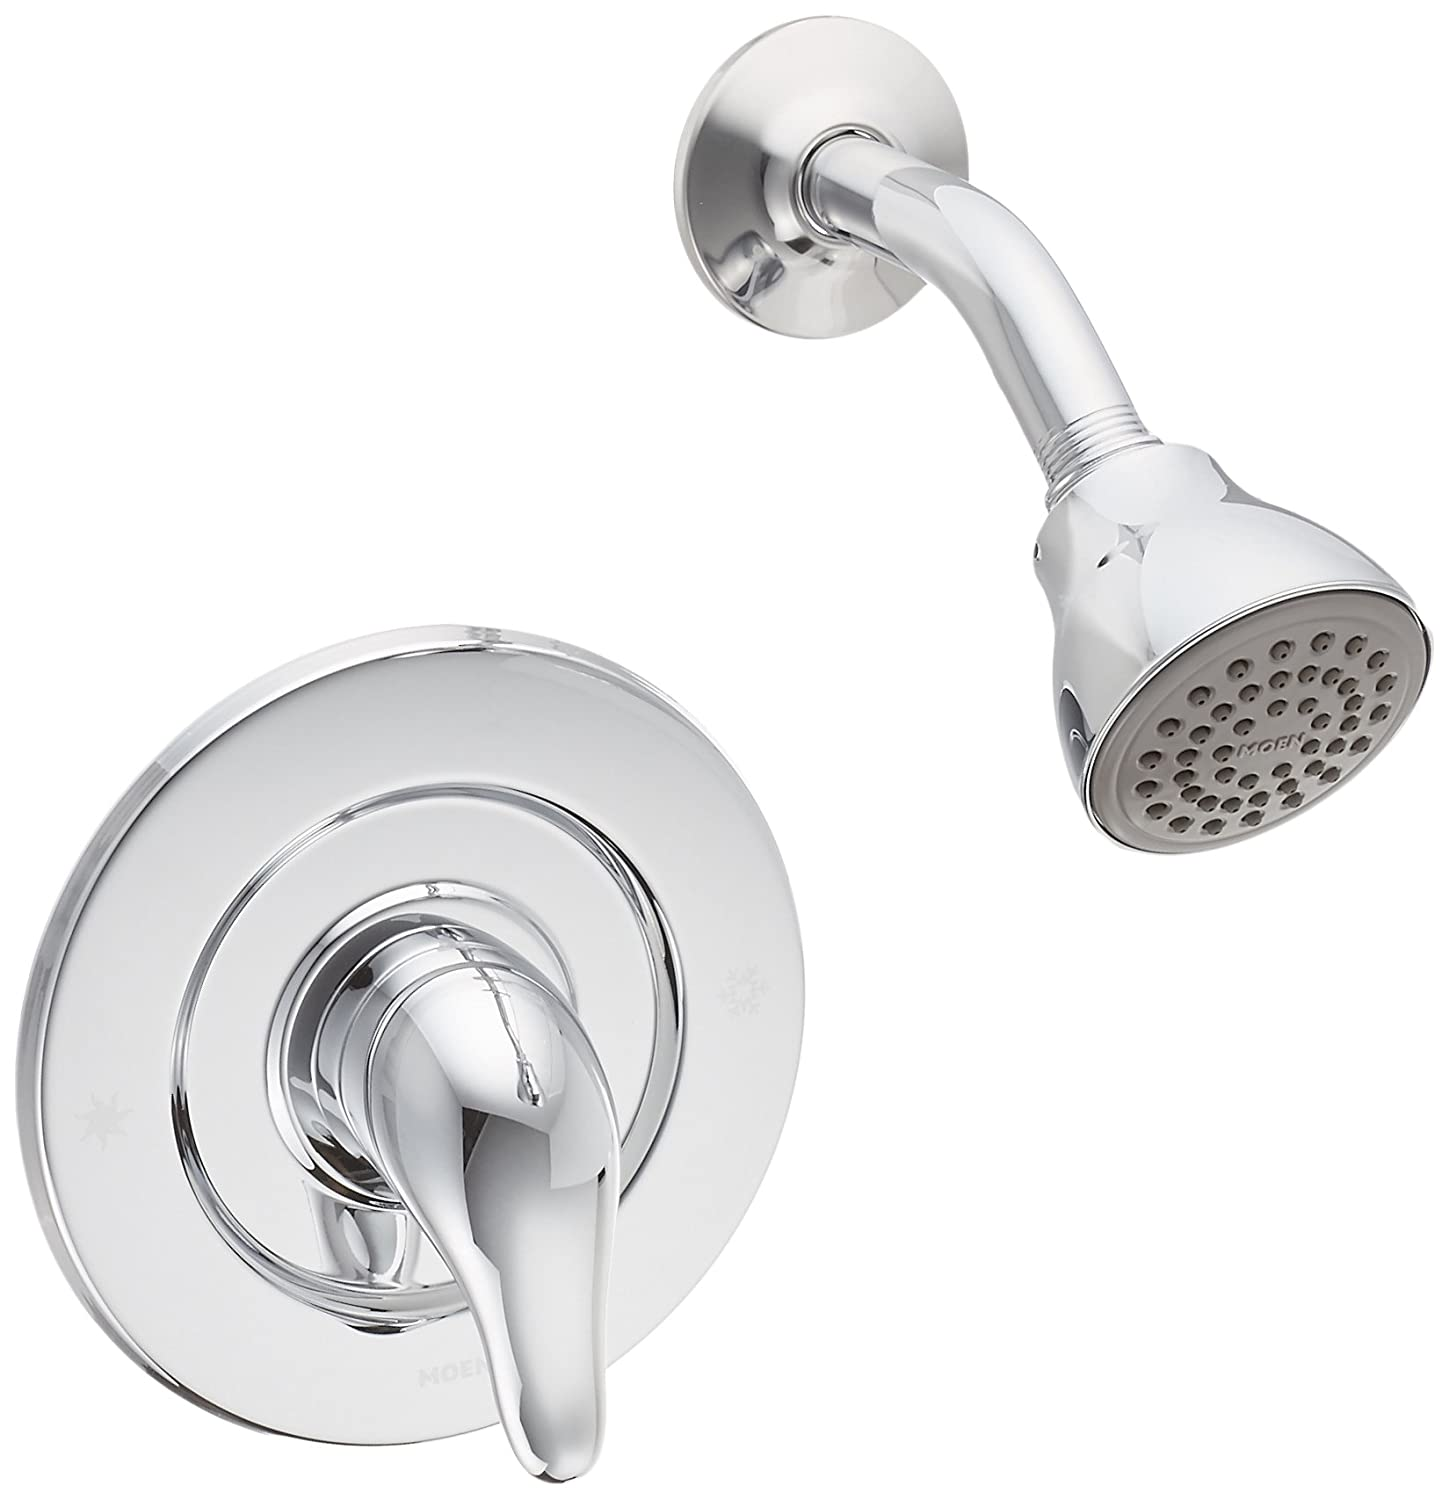 knob moen wall kitchen handle valve with plumbing appearance bathroom also replacement without shower and cartridge faucet behind altering the